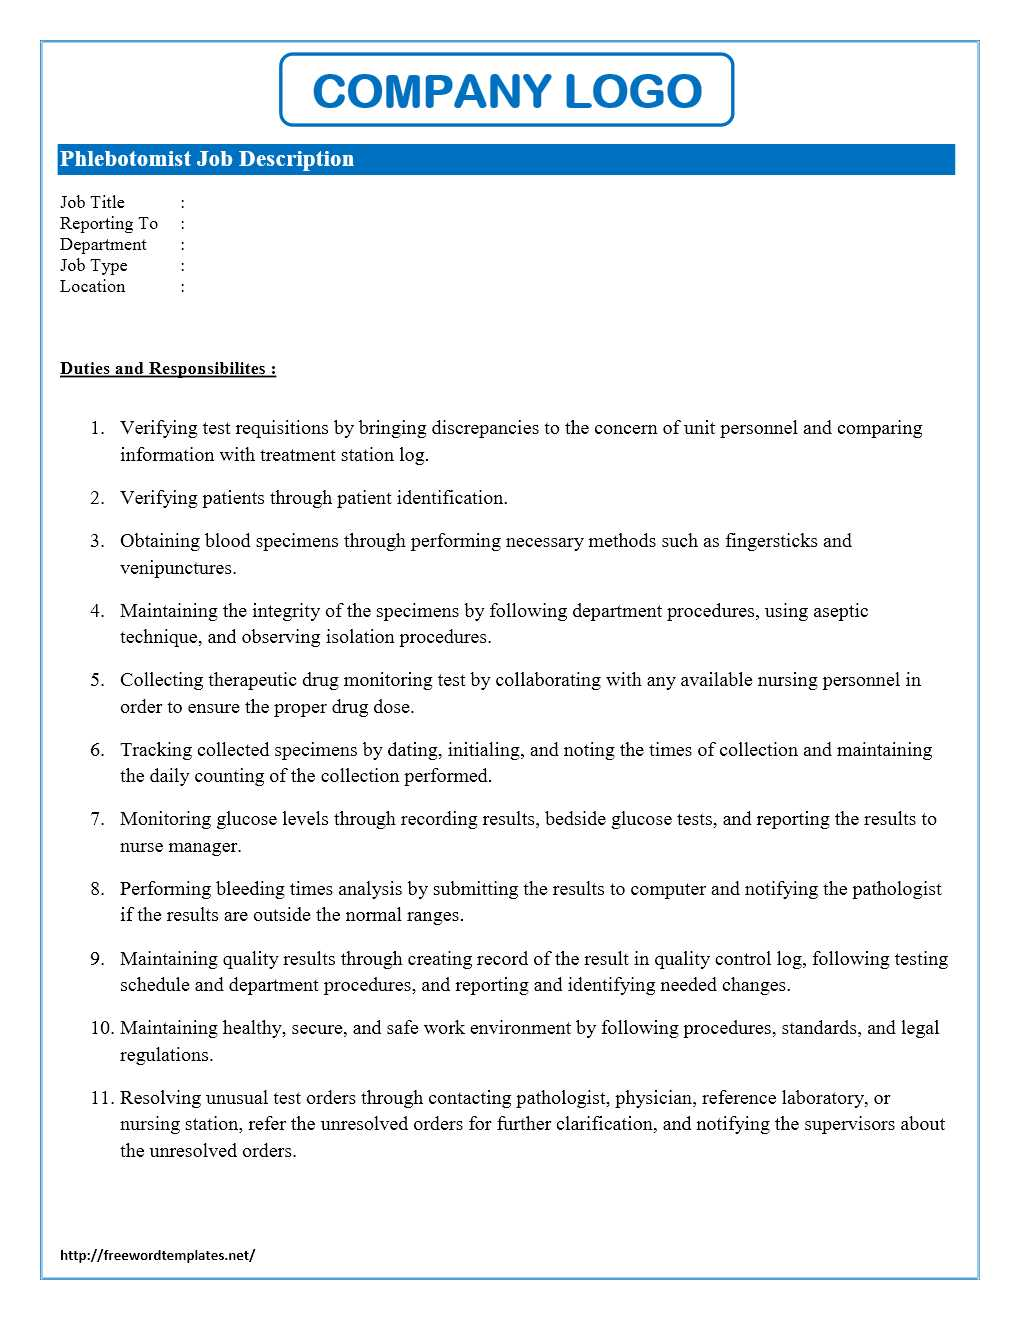 Phlebotomist job description for Template for job description in word